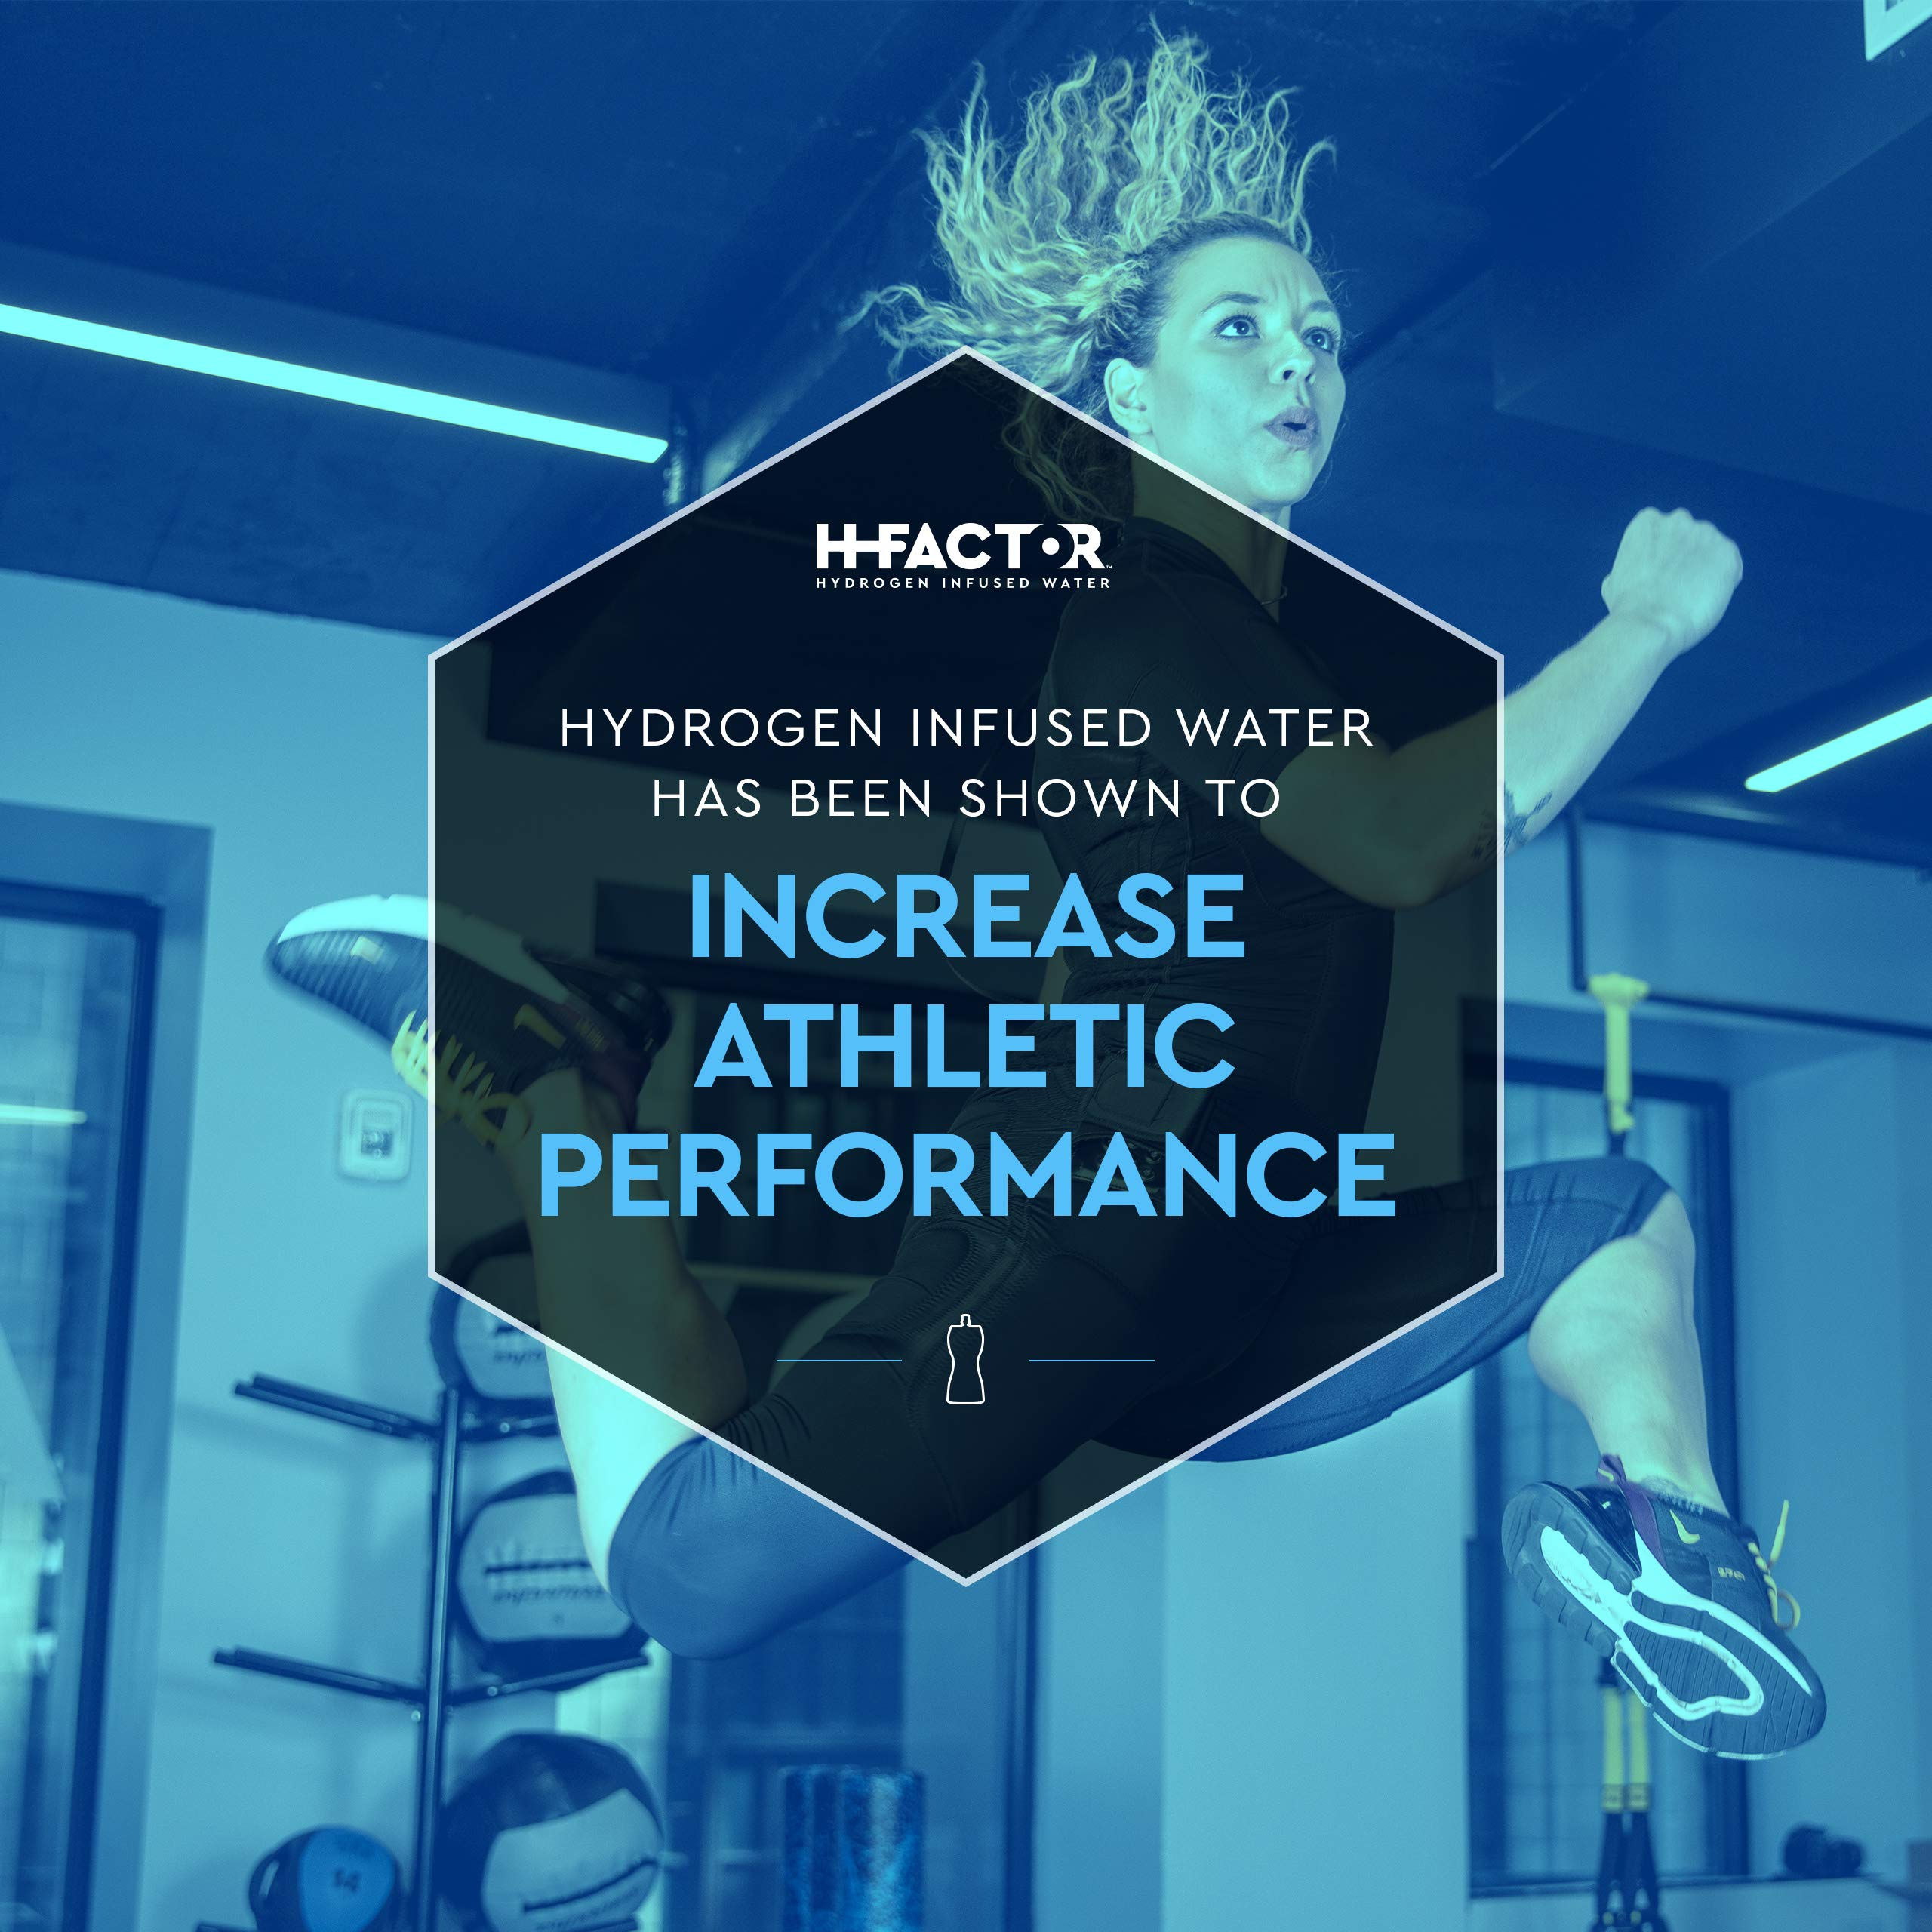 HFactor Hydrogen Infused Pure Drinking Water, Pre Or Post Workout Recovery Drink, 11 Fl Oz (24 Pack), Molecular Hydrogen Supports Athletic Performance Delivers Antioxidant, Packaging May Vary by H Factor (Image #3)